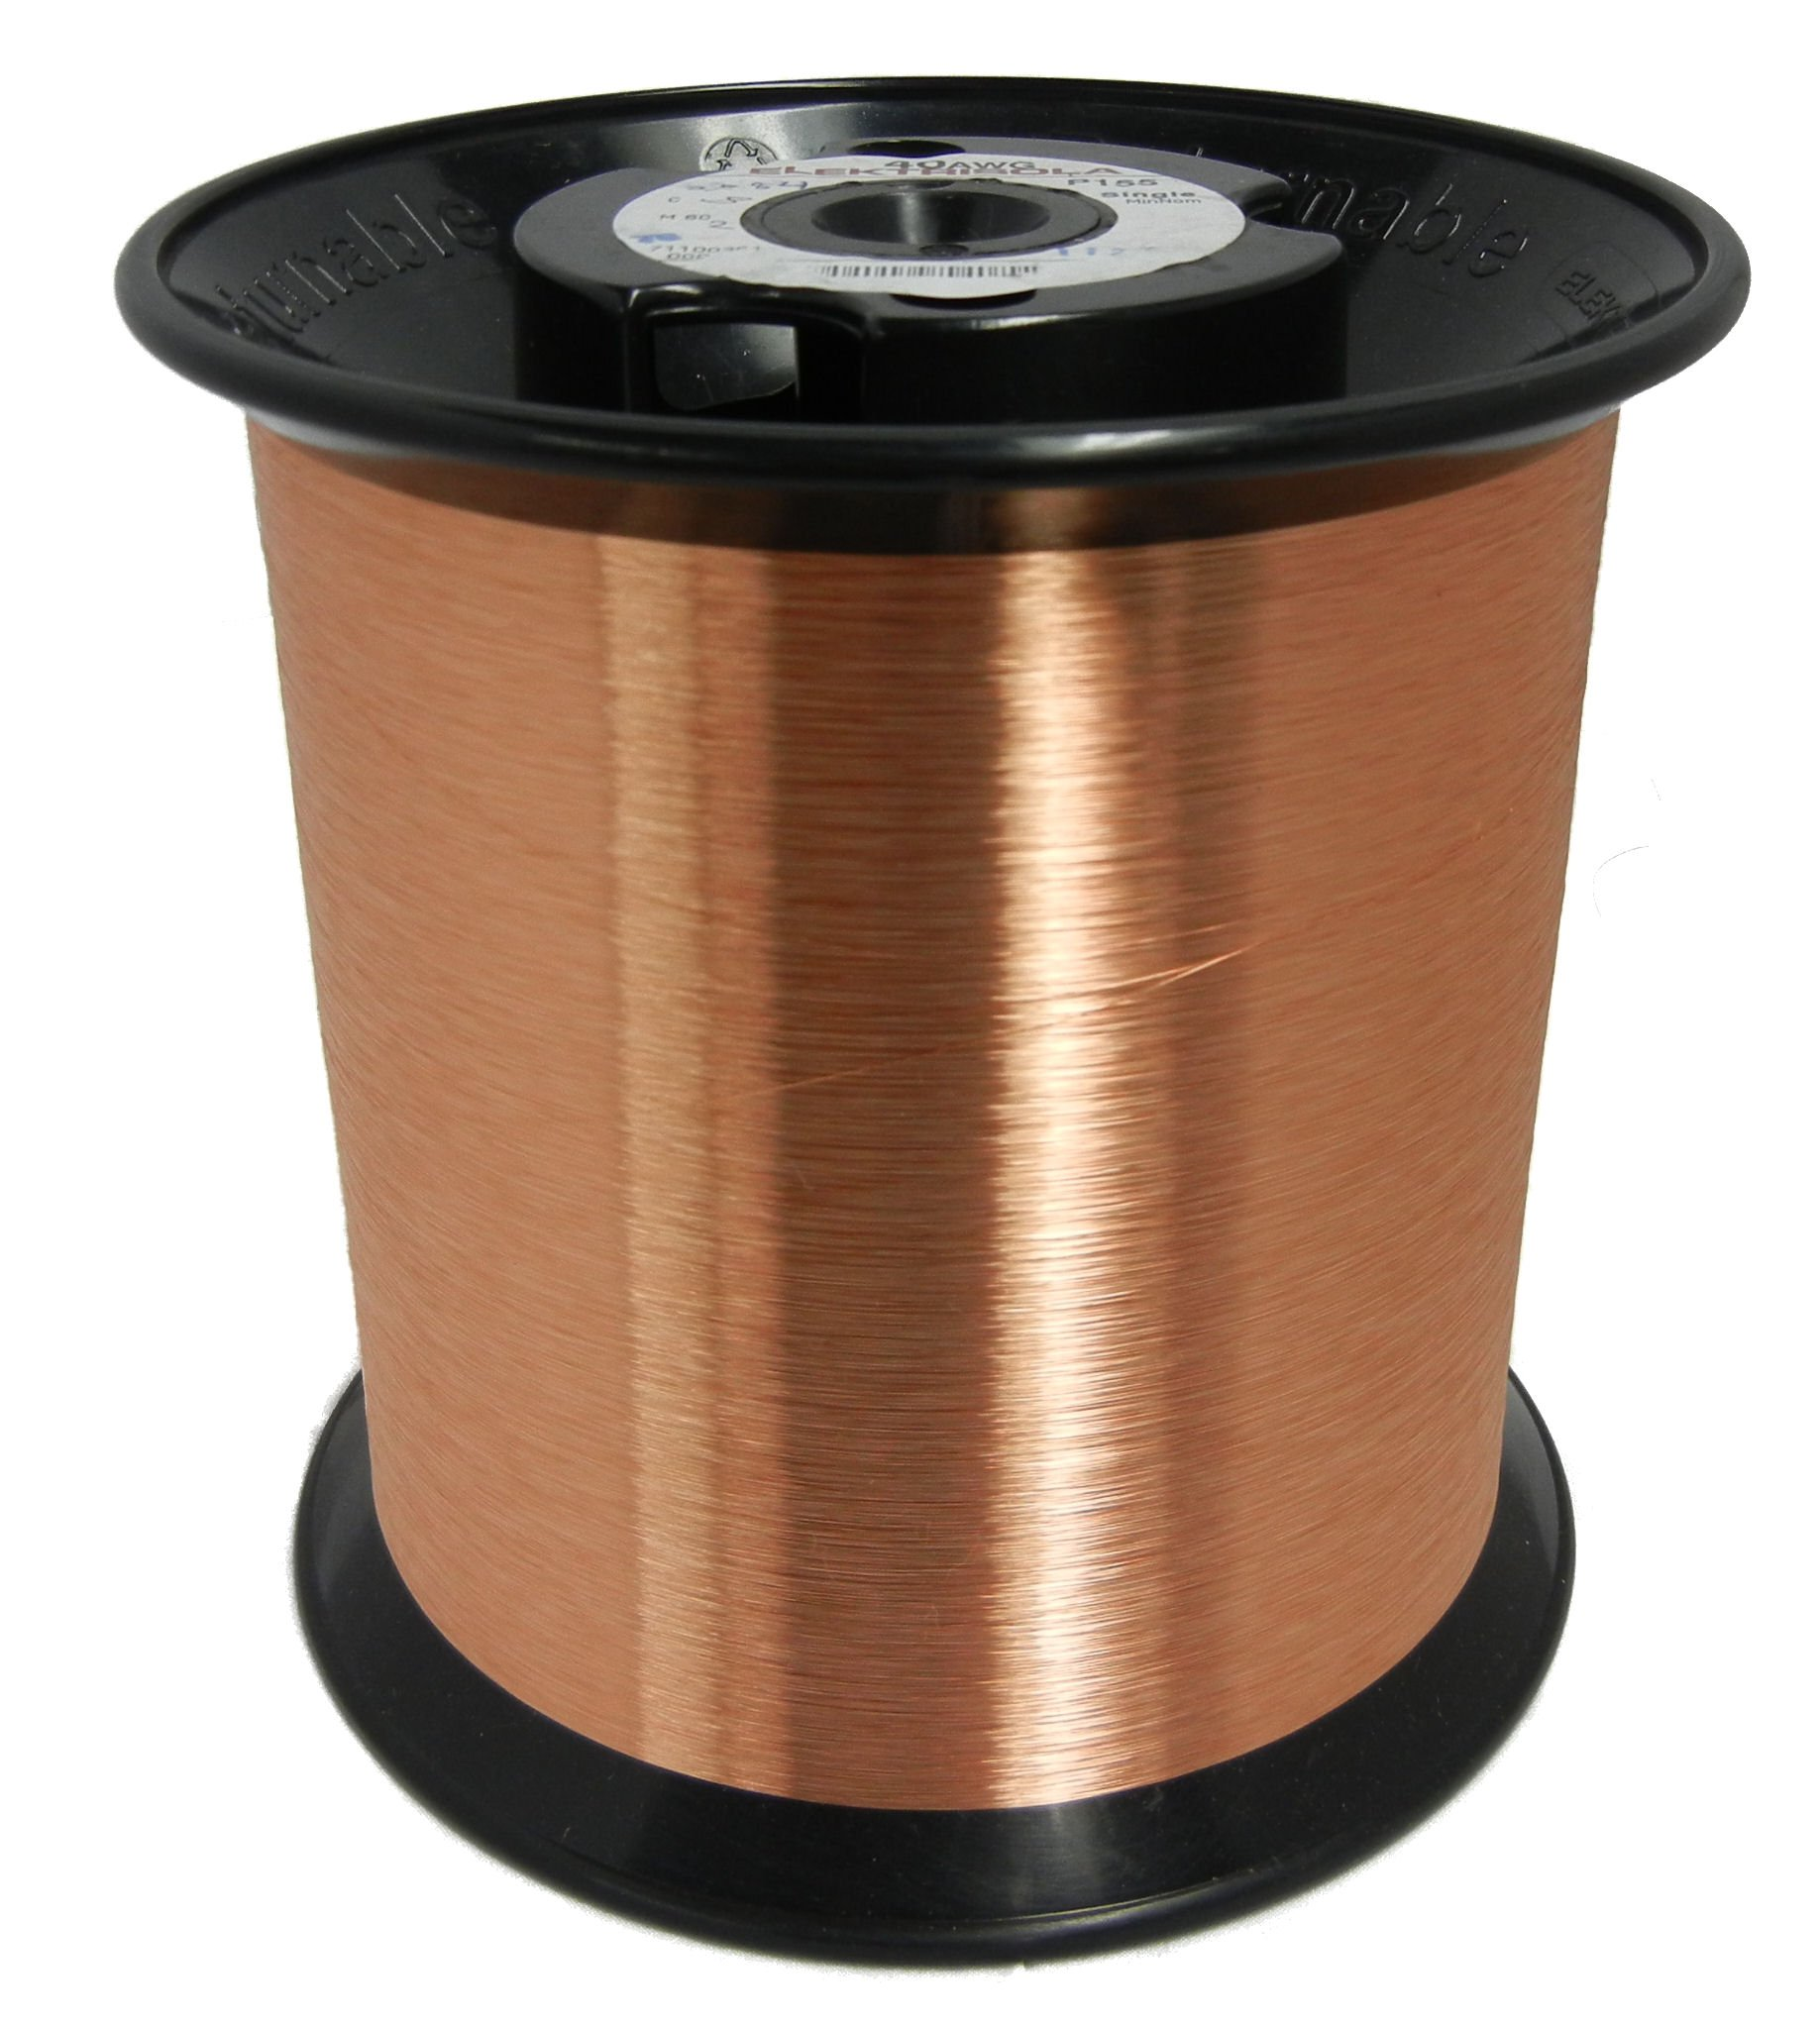 Remington Industries 42SNS 42 AWG Magnet Wire, Enameled Copper Wire, 5.0 lbs, 0.0026'' Diameter, 256565' Length, Natural